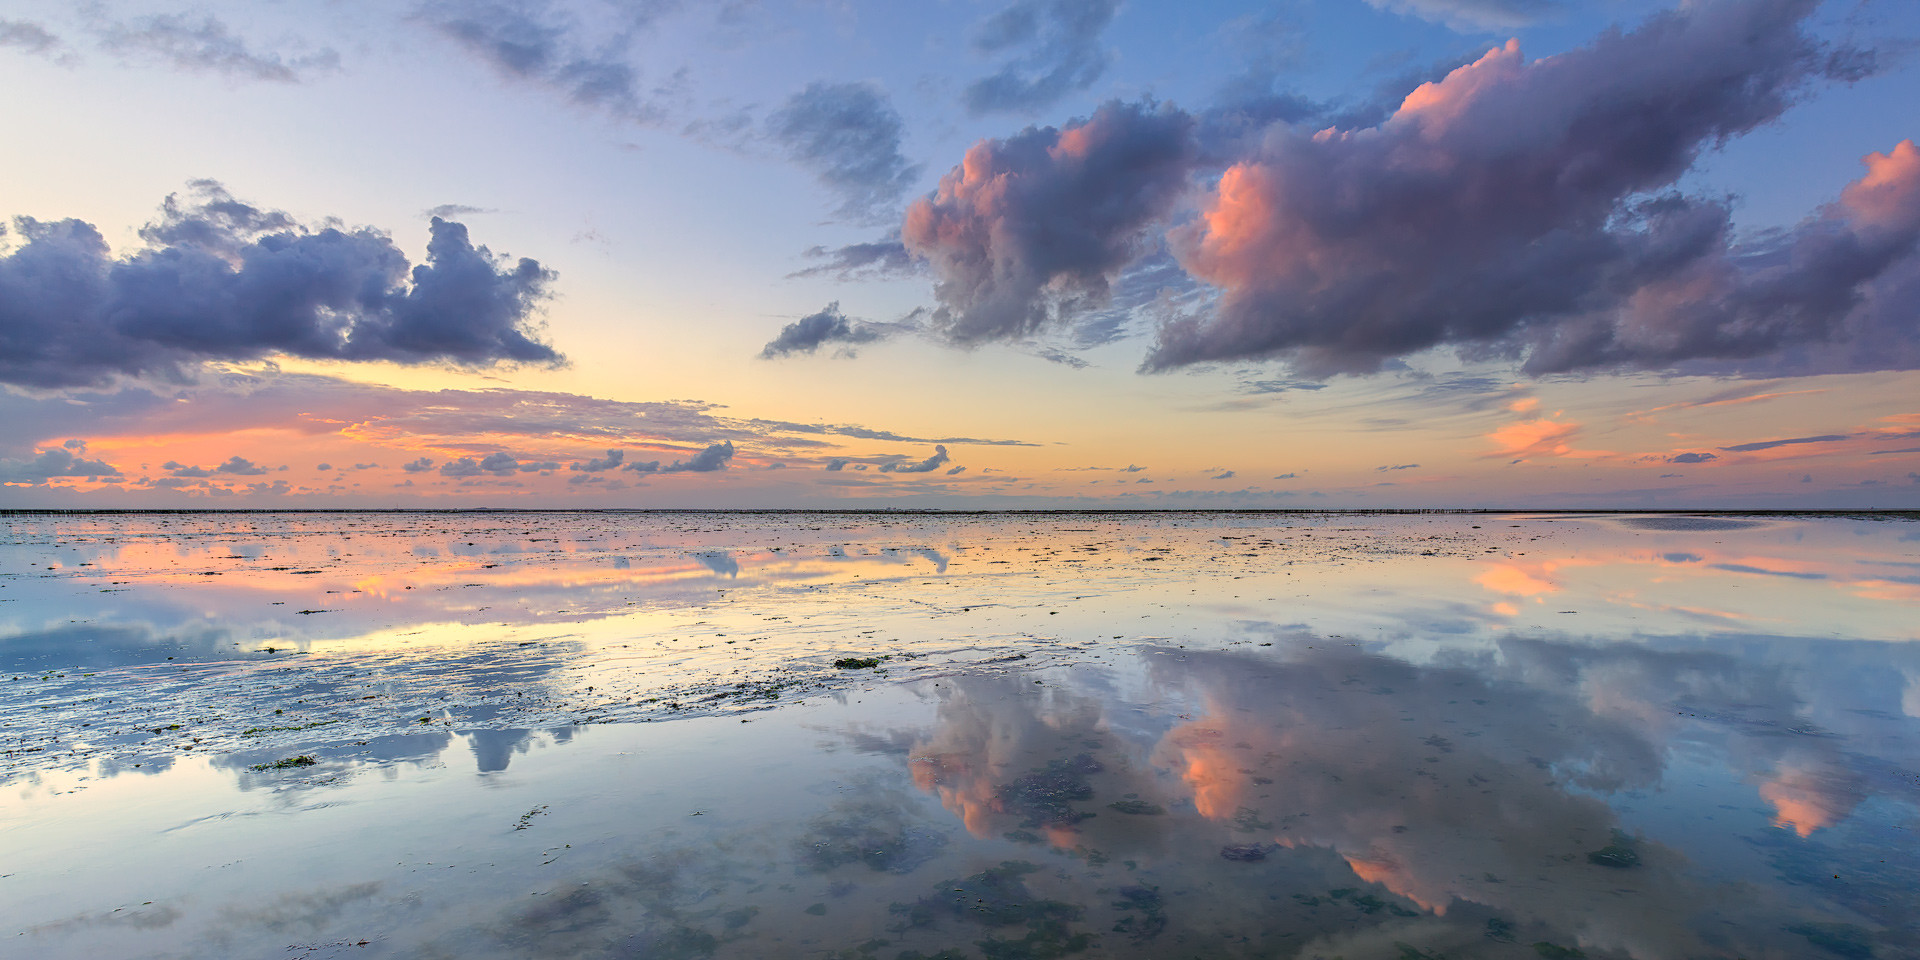 A tranquil and calm sunset at low tide over the Wadden Sea near Ternaard, Friesland, The Netherlands